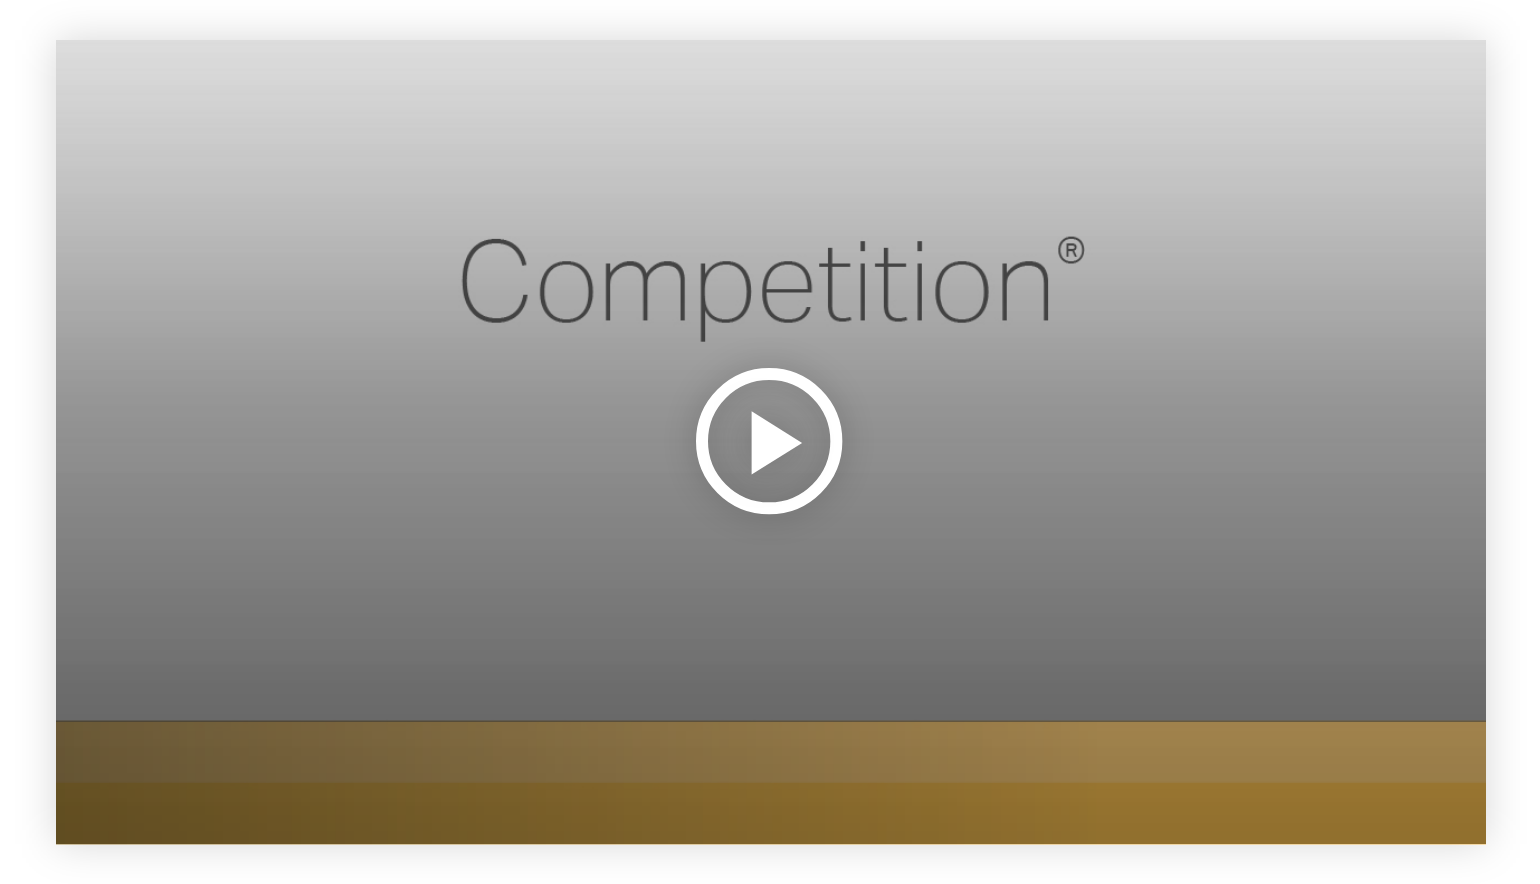 Play video: Competition - Learn more about your innate talents from Gallup's Clifton StrengthsFinder!